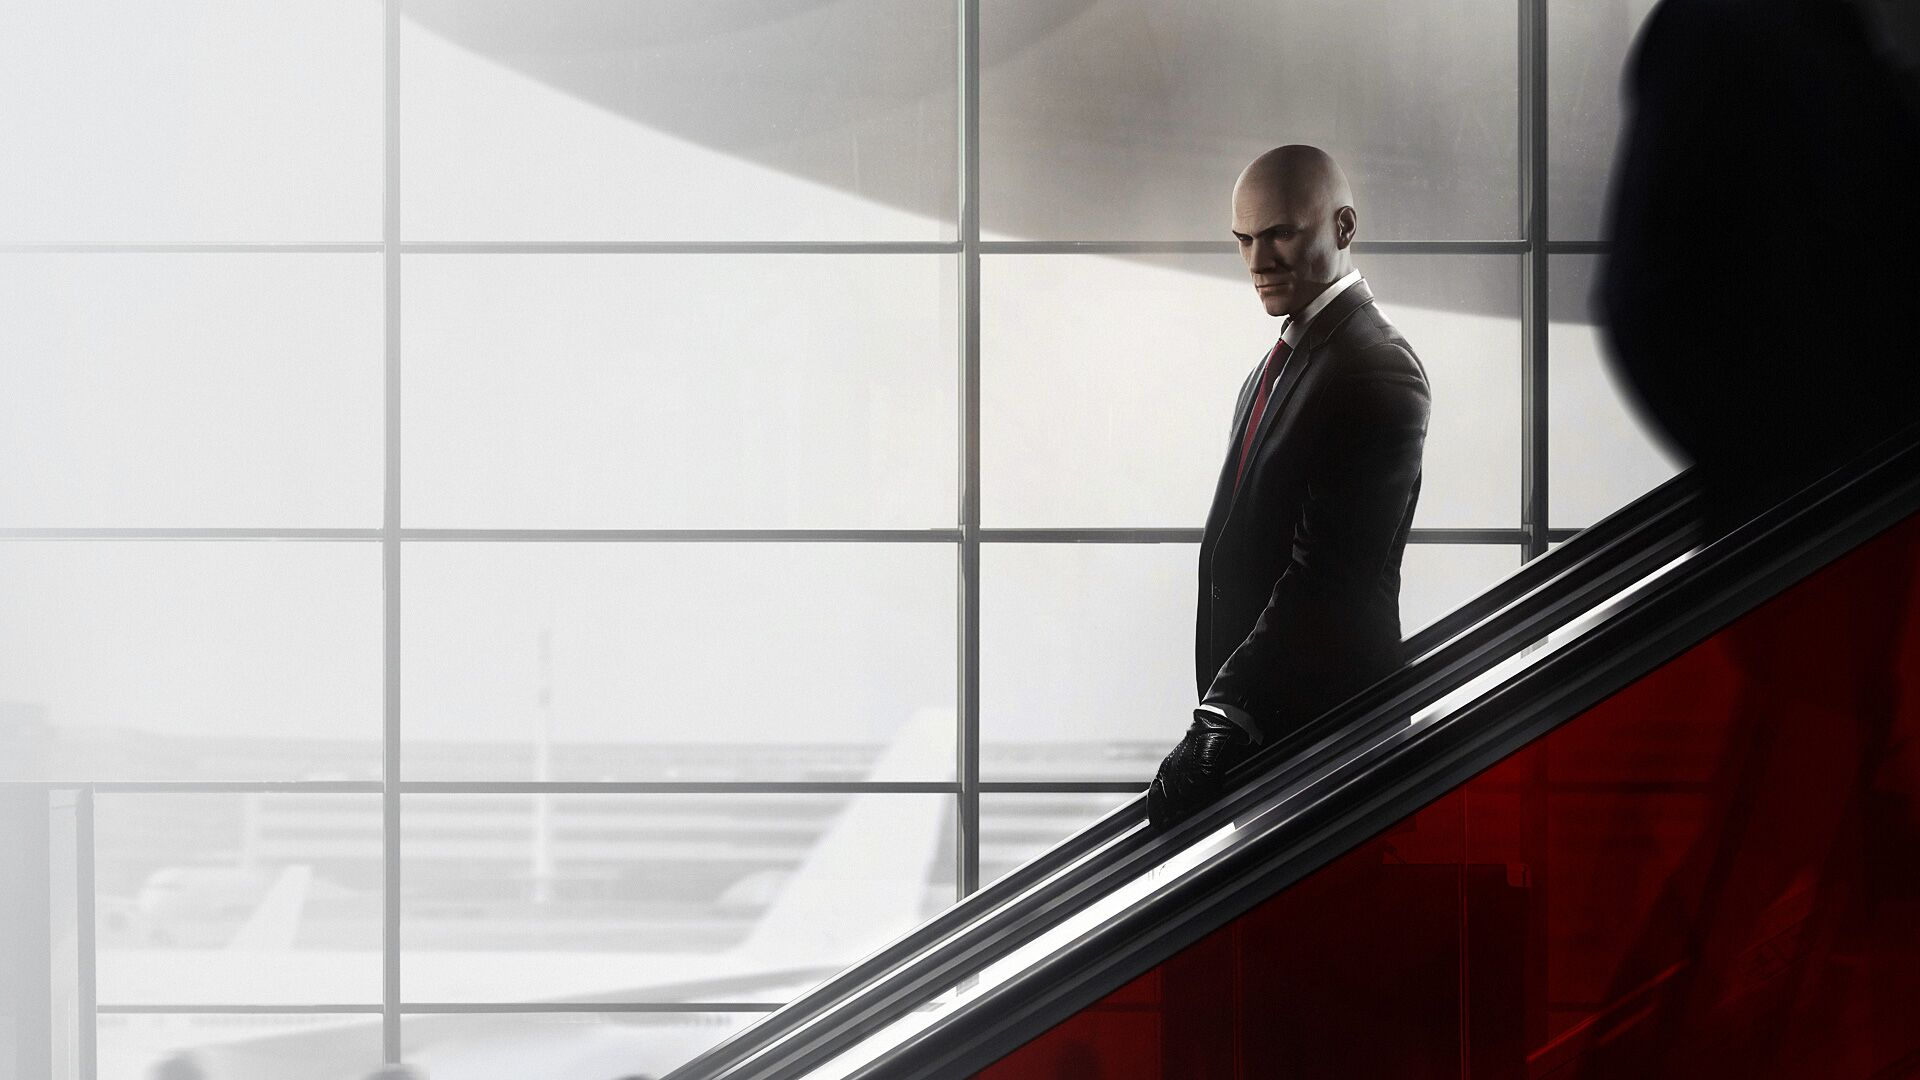 Hitman 2016 Wallpapers Images Photos Pictures Backgrounds 1920x1080